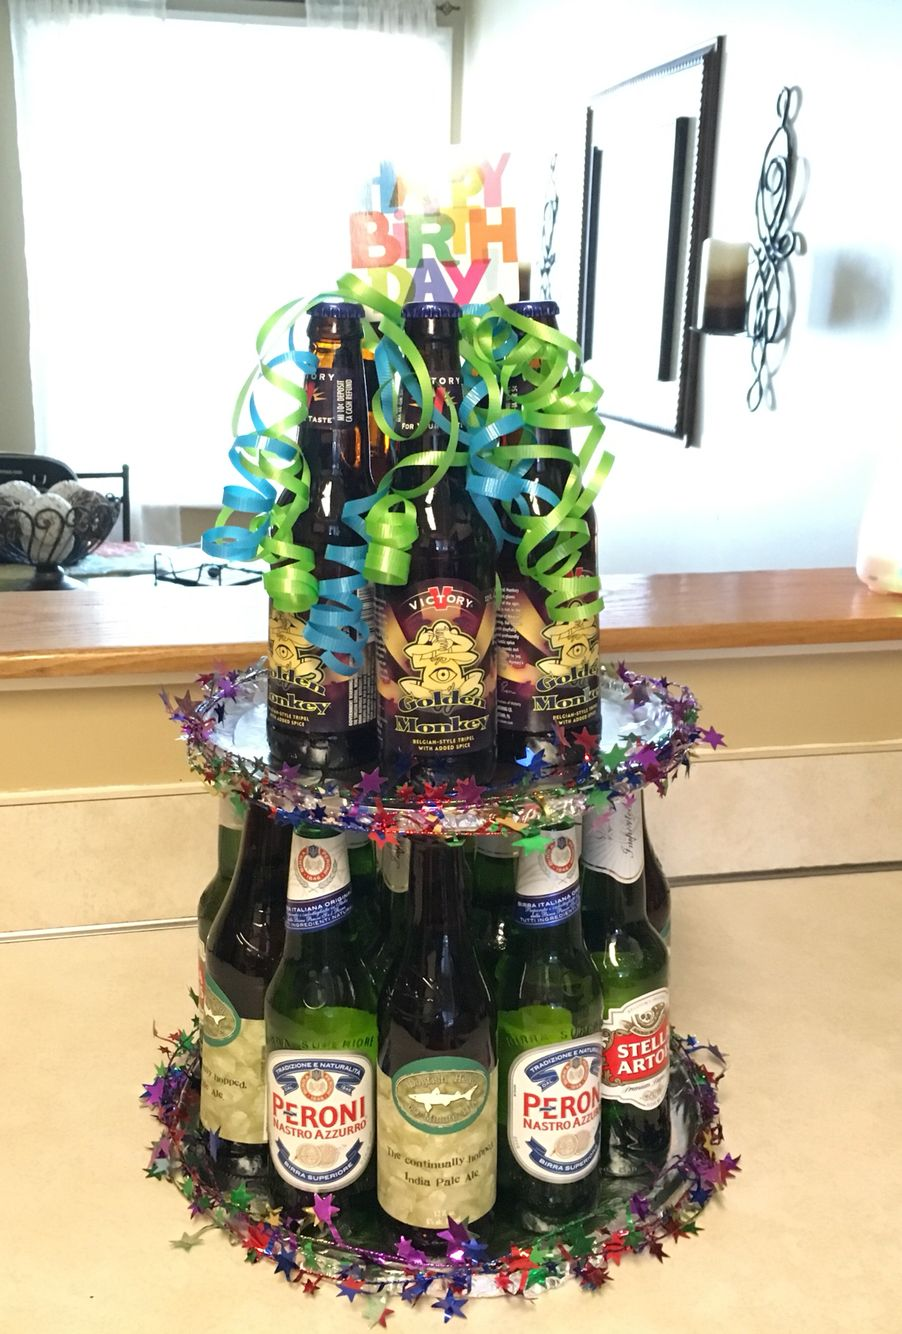 Beer Bottle Cake Welcome Home Cakes Gifts Parties Make